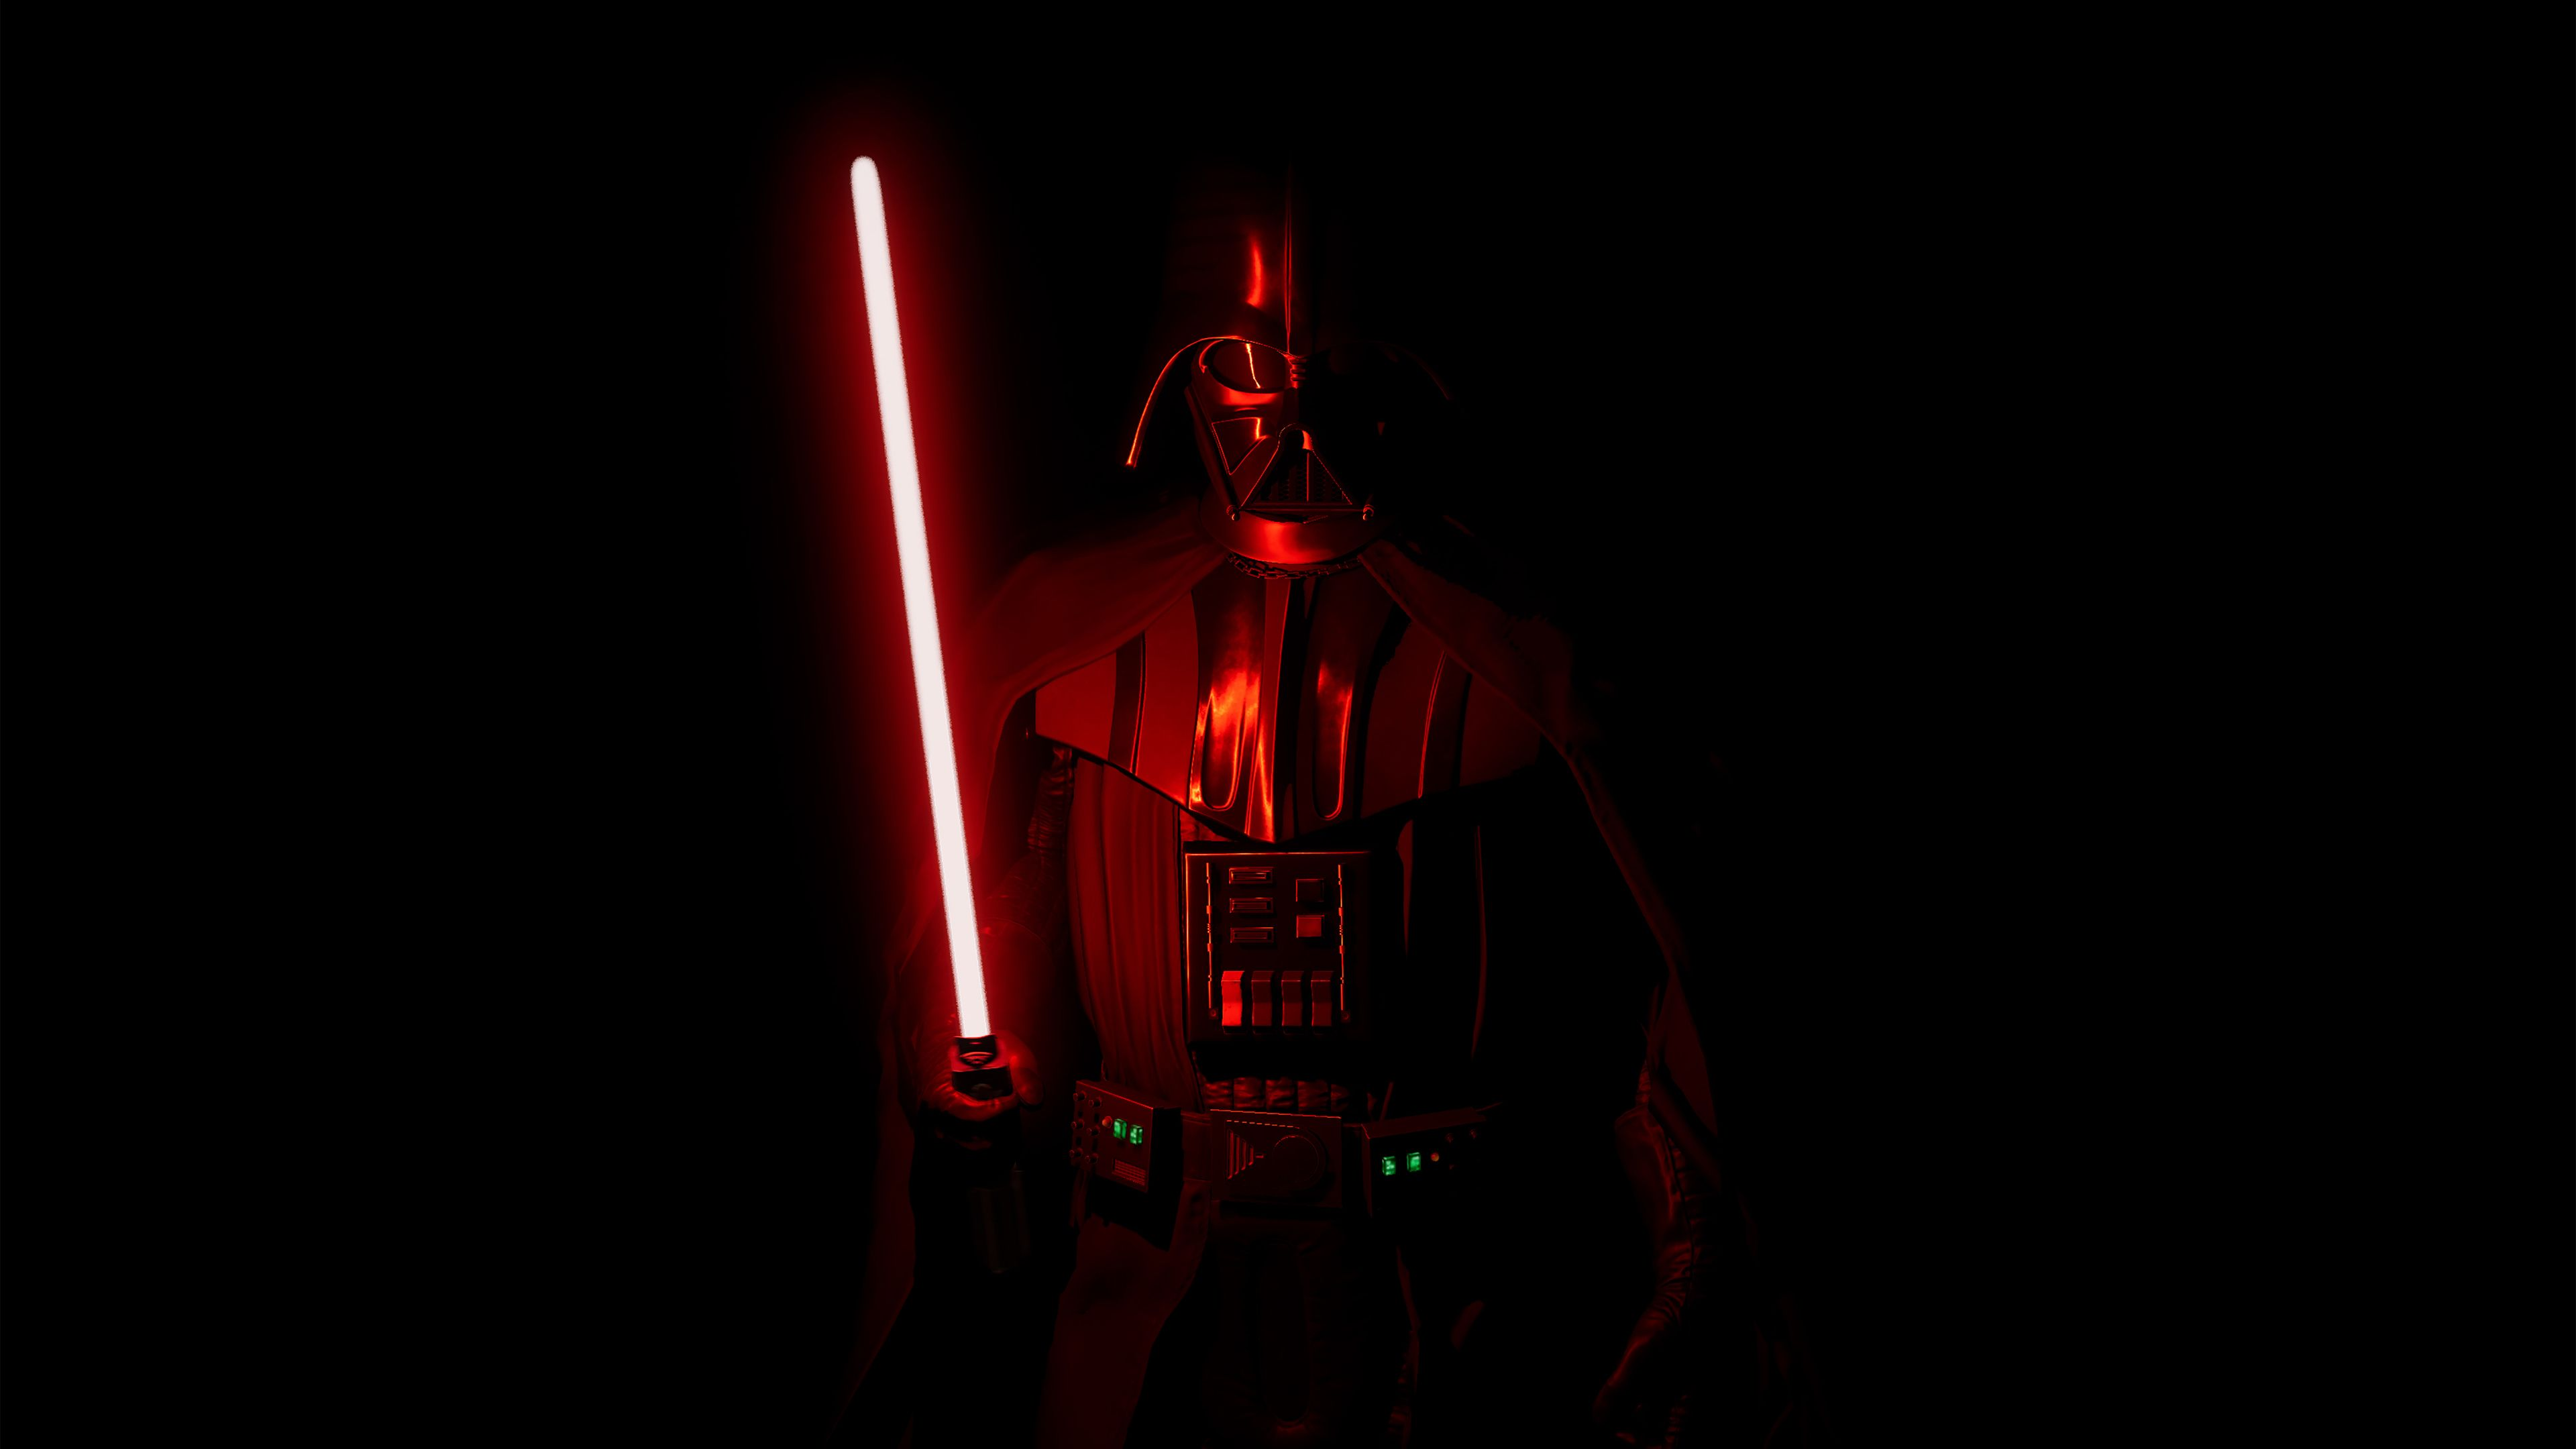 Darth Vader 4k 2019 Star Wars Wallpapers Hd Wallpapers Darth Vader Wallpapers 4k Wallpapers Darth Vader Wallpaper Star Wars Wallpaper Darth Vader